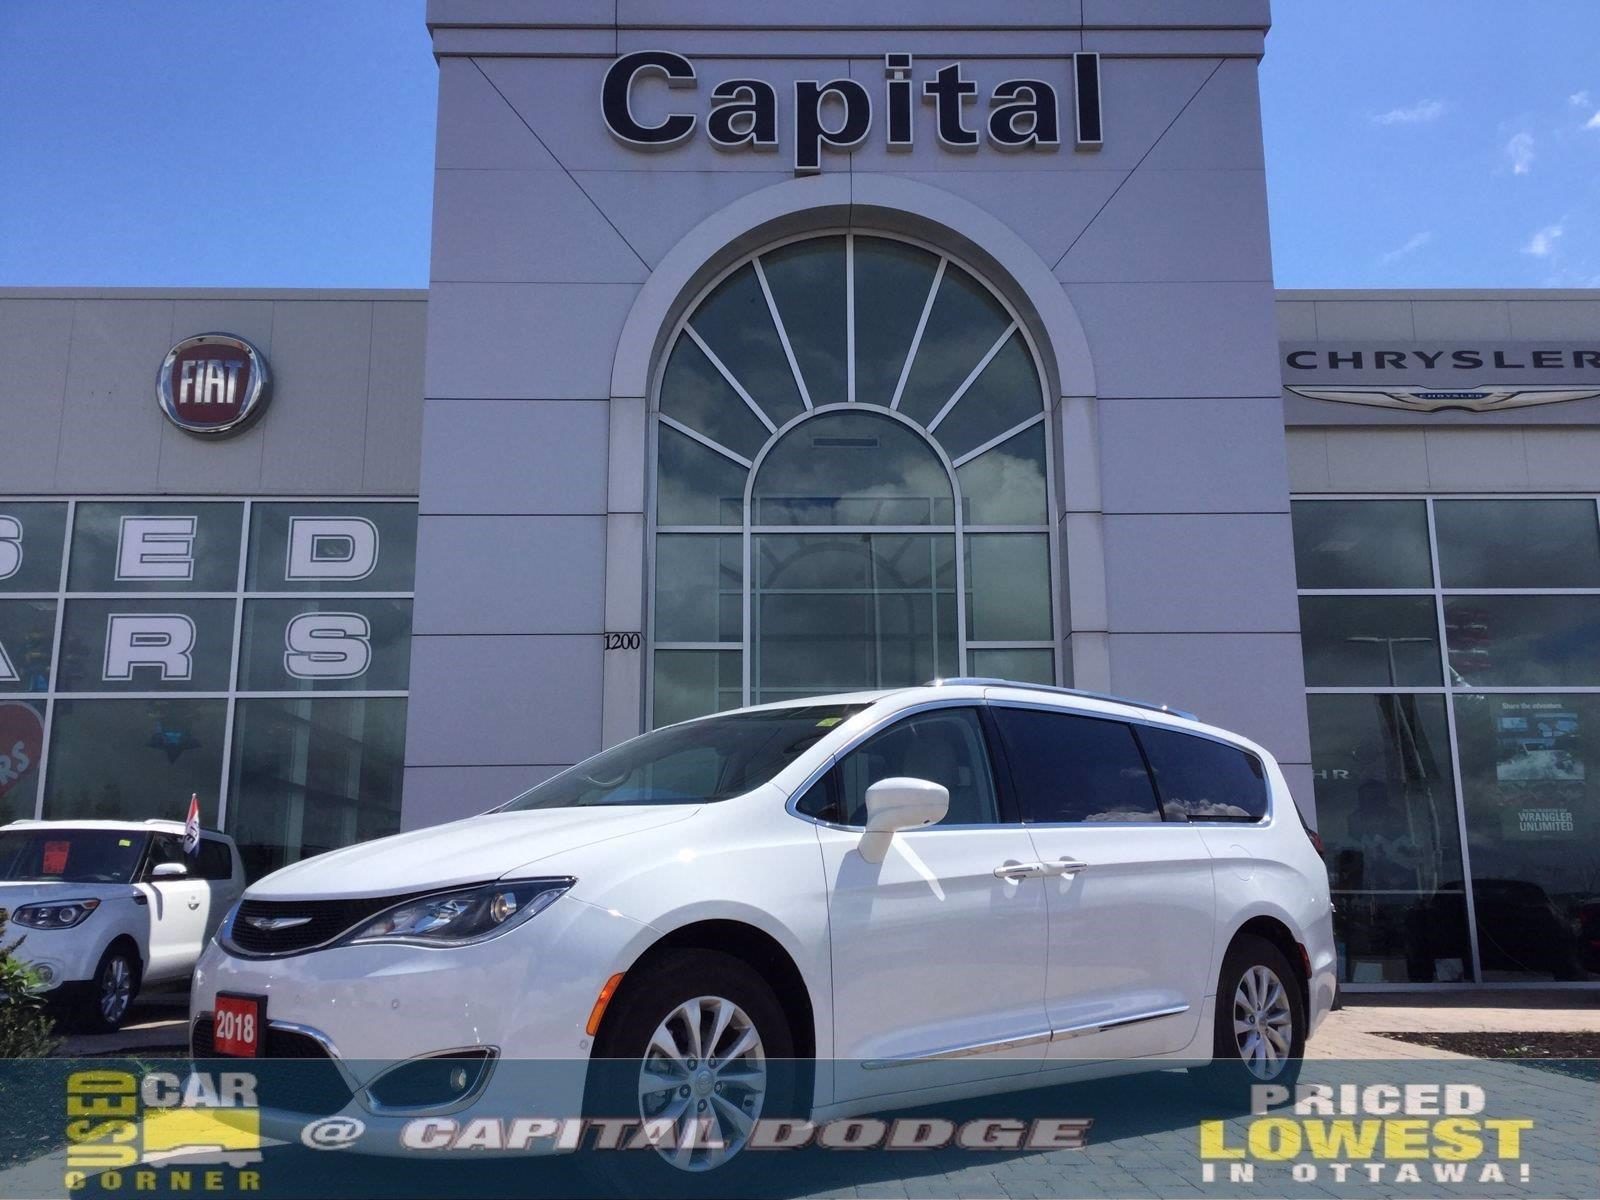 2018 Chrysler Pacifica Touring-L Plus - 15,886km